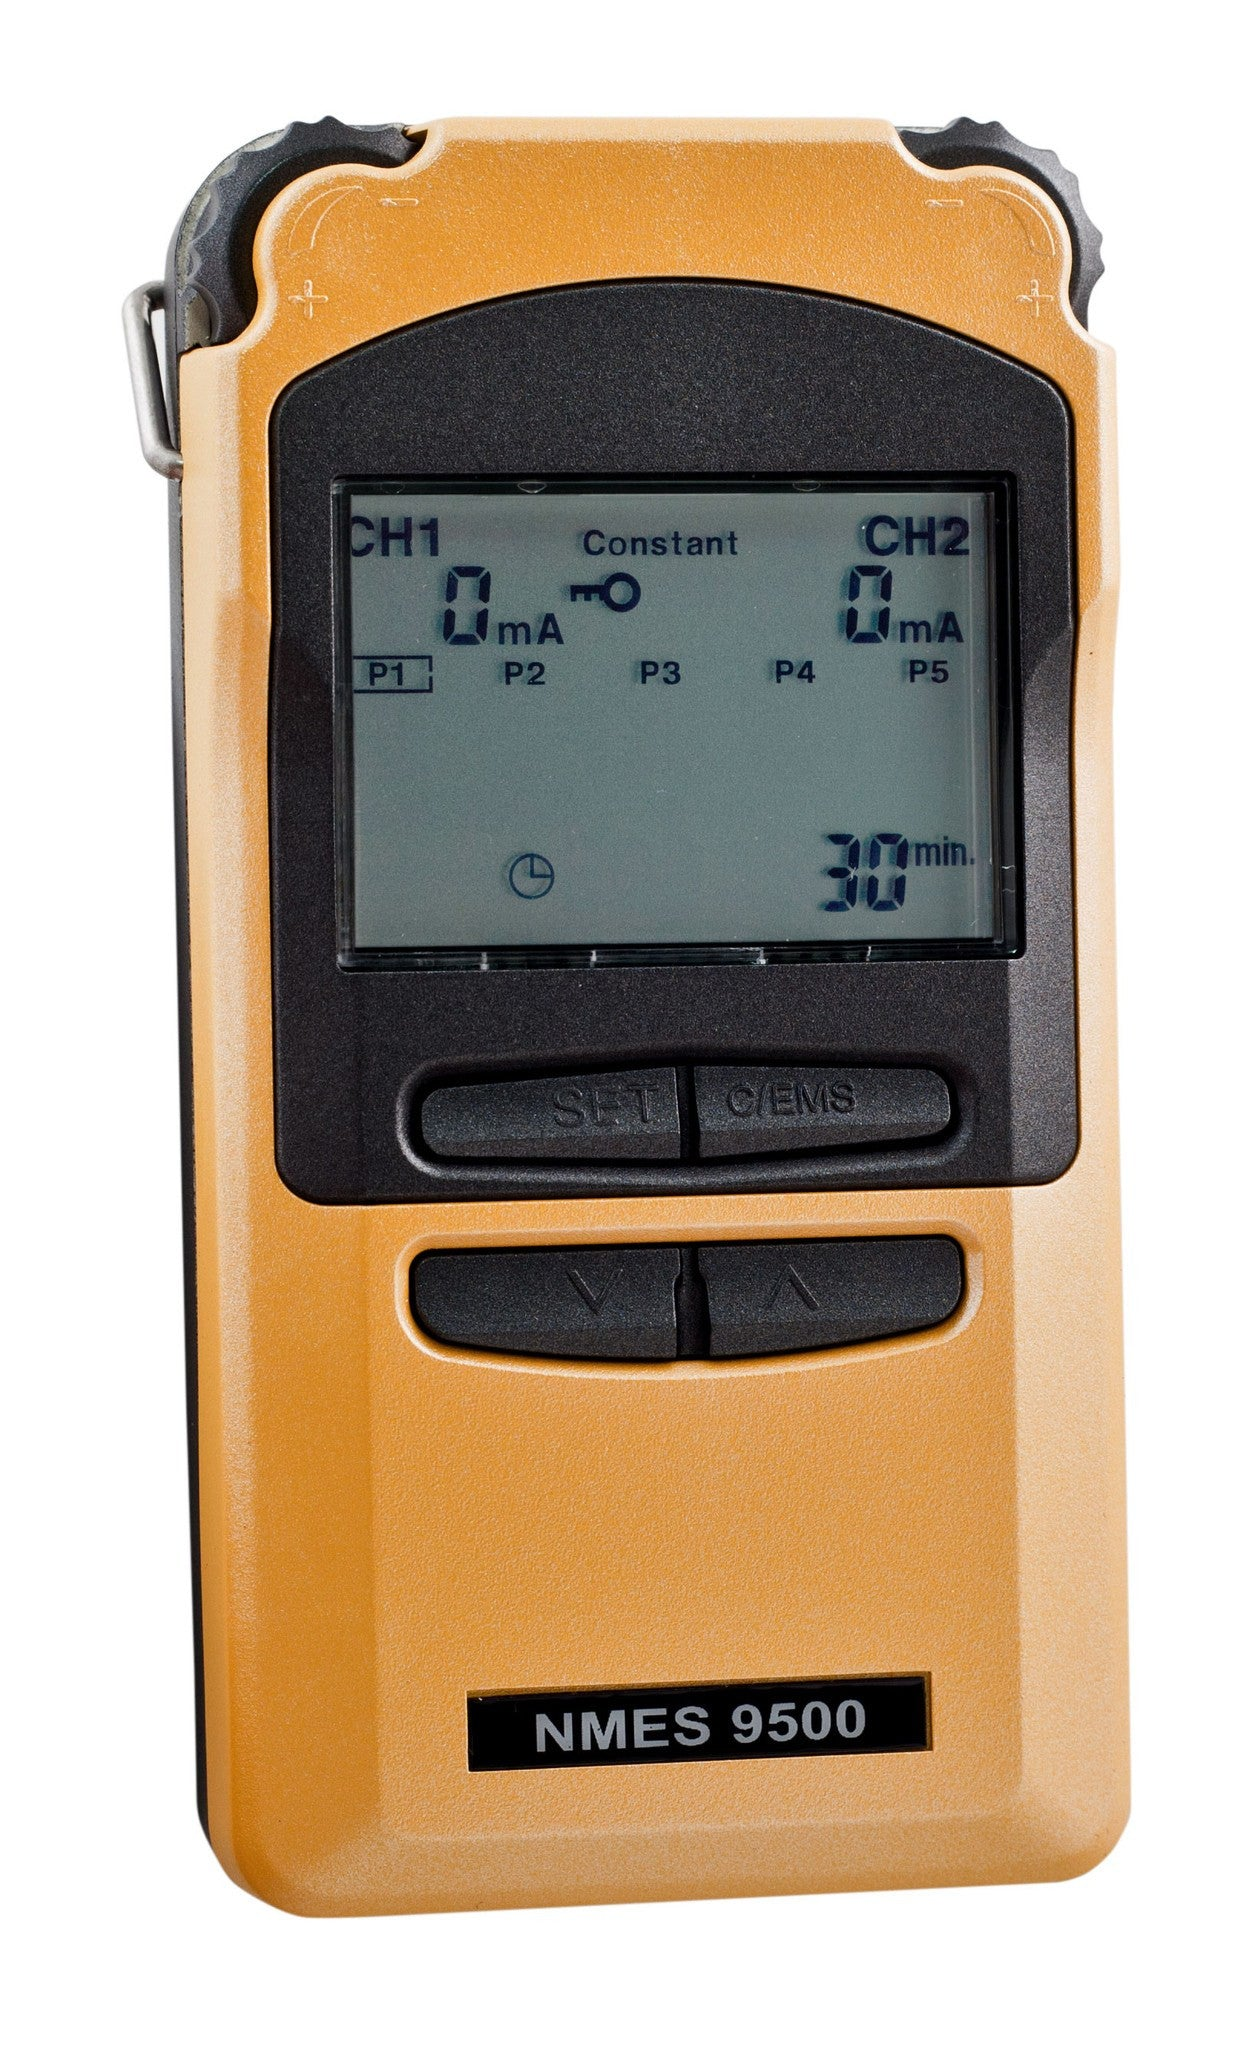 Buy NMES 9500 Digital EMS Electrical Muscle Stimulator Device by Pain Management Technologies from a SDVOSB | Tens Units, Stimulators